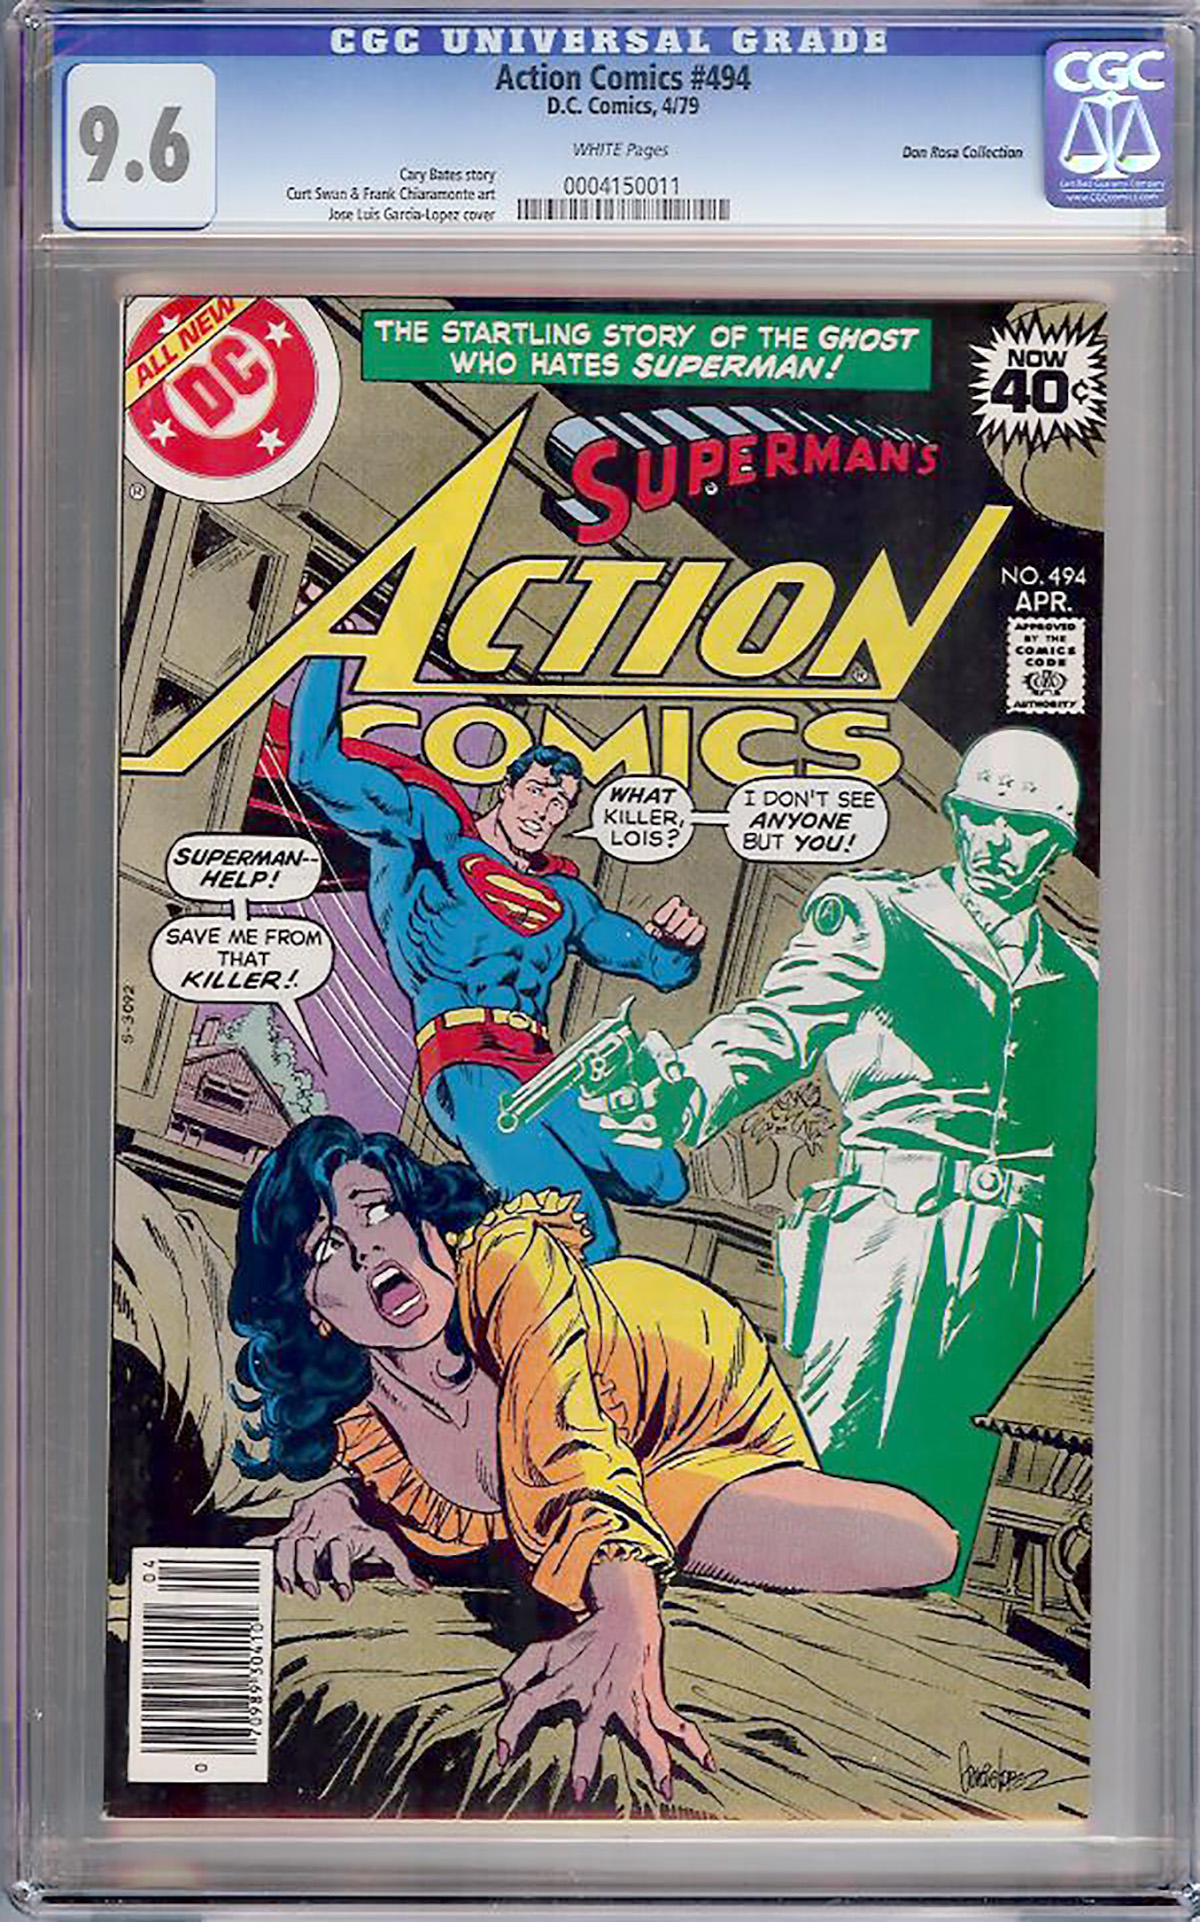 Action Comics #494 CGC 9.6 w Don Rosa Collection